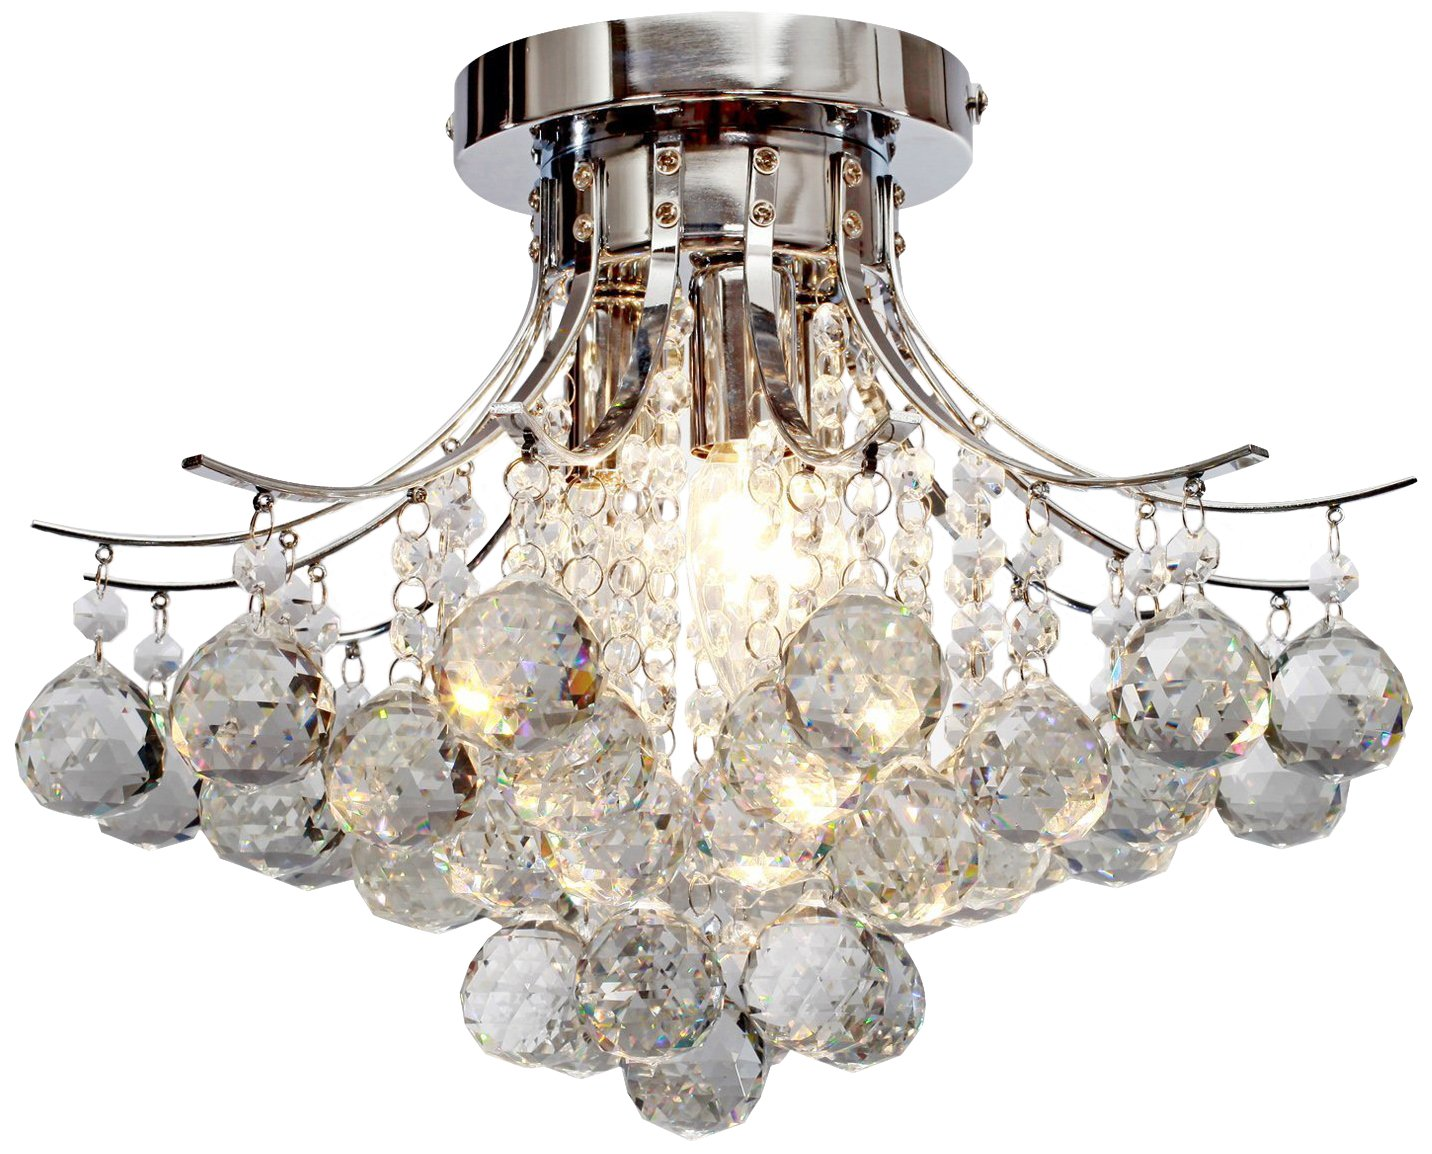 "Saint Mossi Chandelier Modern K9 Crystal Raindrop Chandelier Lighting Flush mount LED Ceiling Light Fixture for Dining Room Bathroom Bedroom Livingroom Pendant Lamp 11""H 16""W"